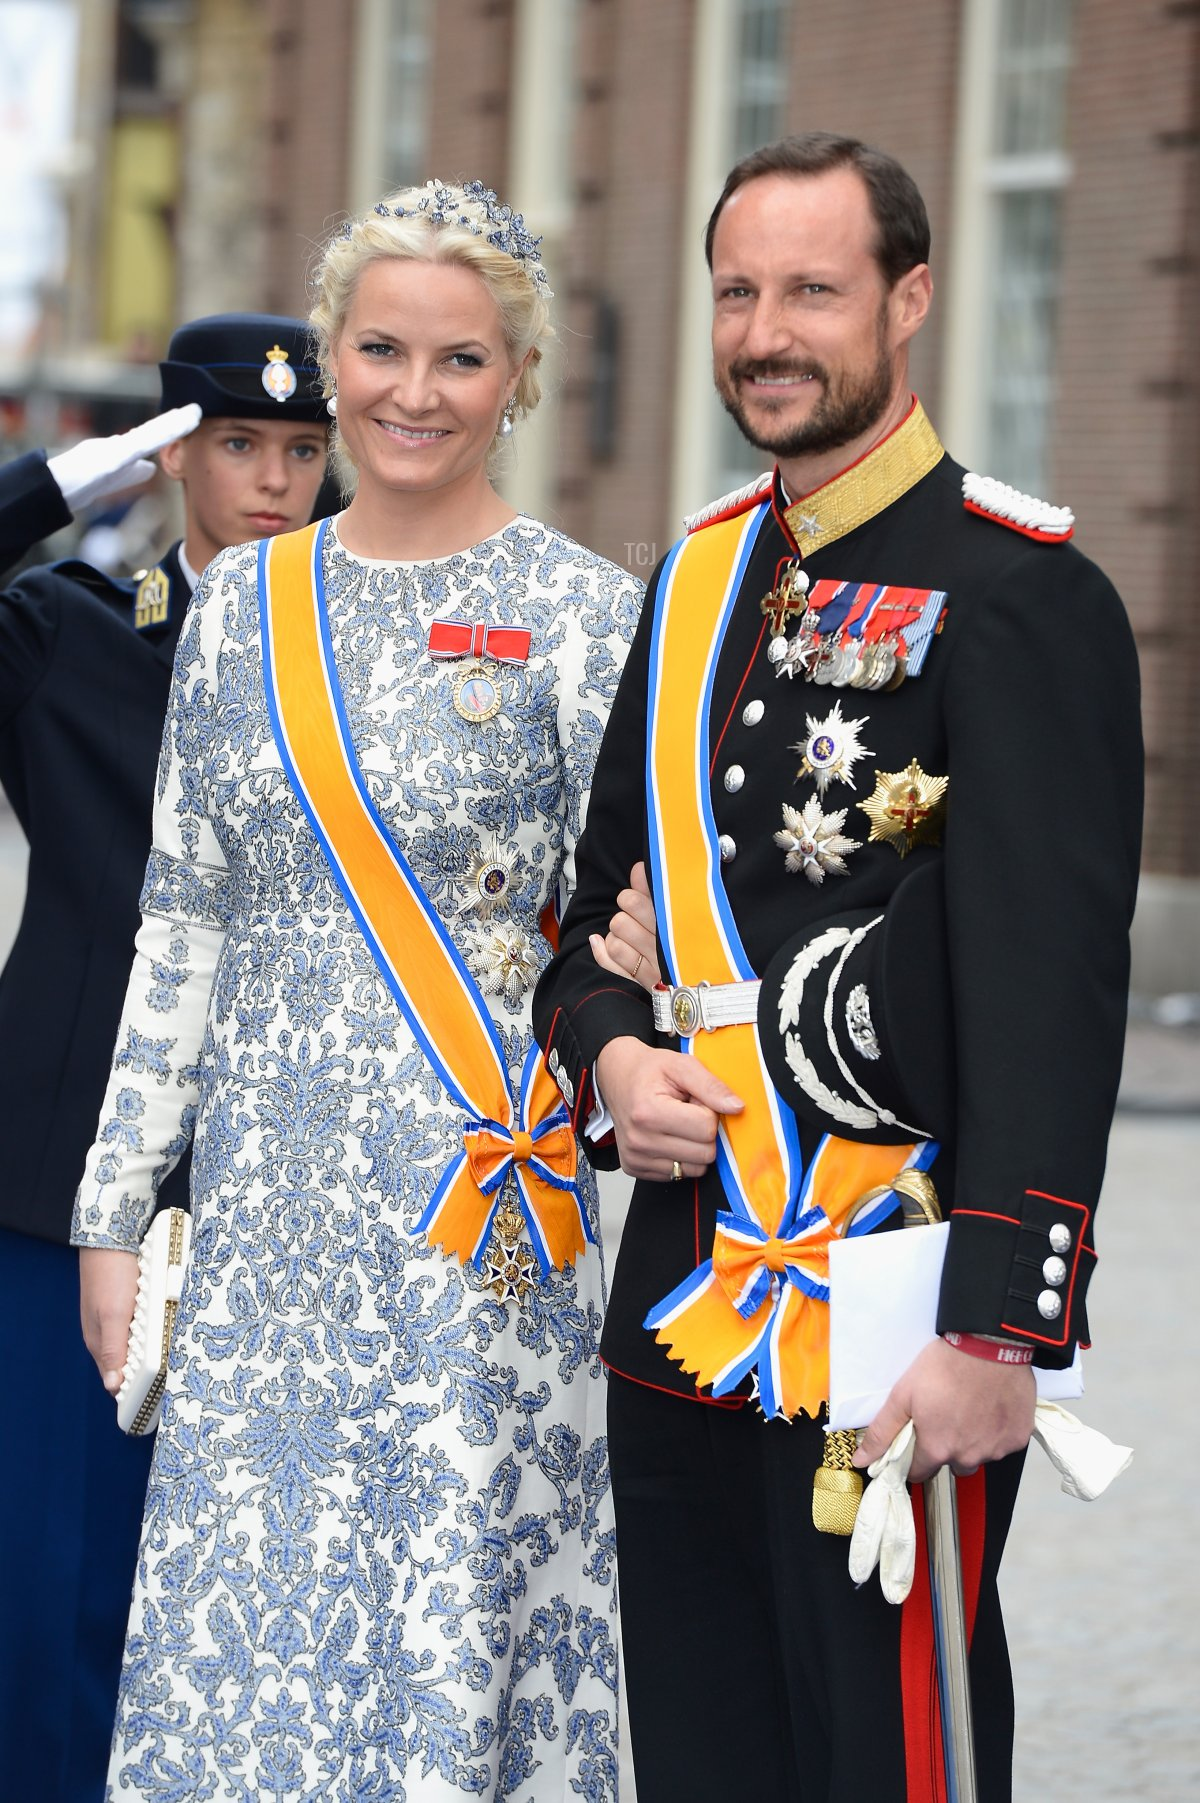 Crown Prince Haakon, and Crown Princess Mette-Marit of Norway depart the Nieuwe Kerk to return to the Royal Palace after the abdication of Queen Beatrix of the Netherlands and the Inauguration of King Willem Alexander of the Netherlands on April 30, 2013 in Amsterdam